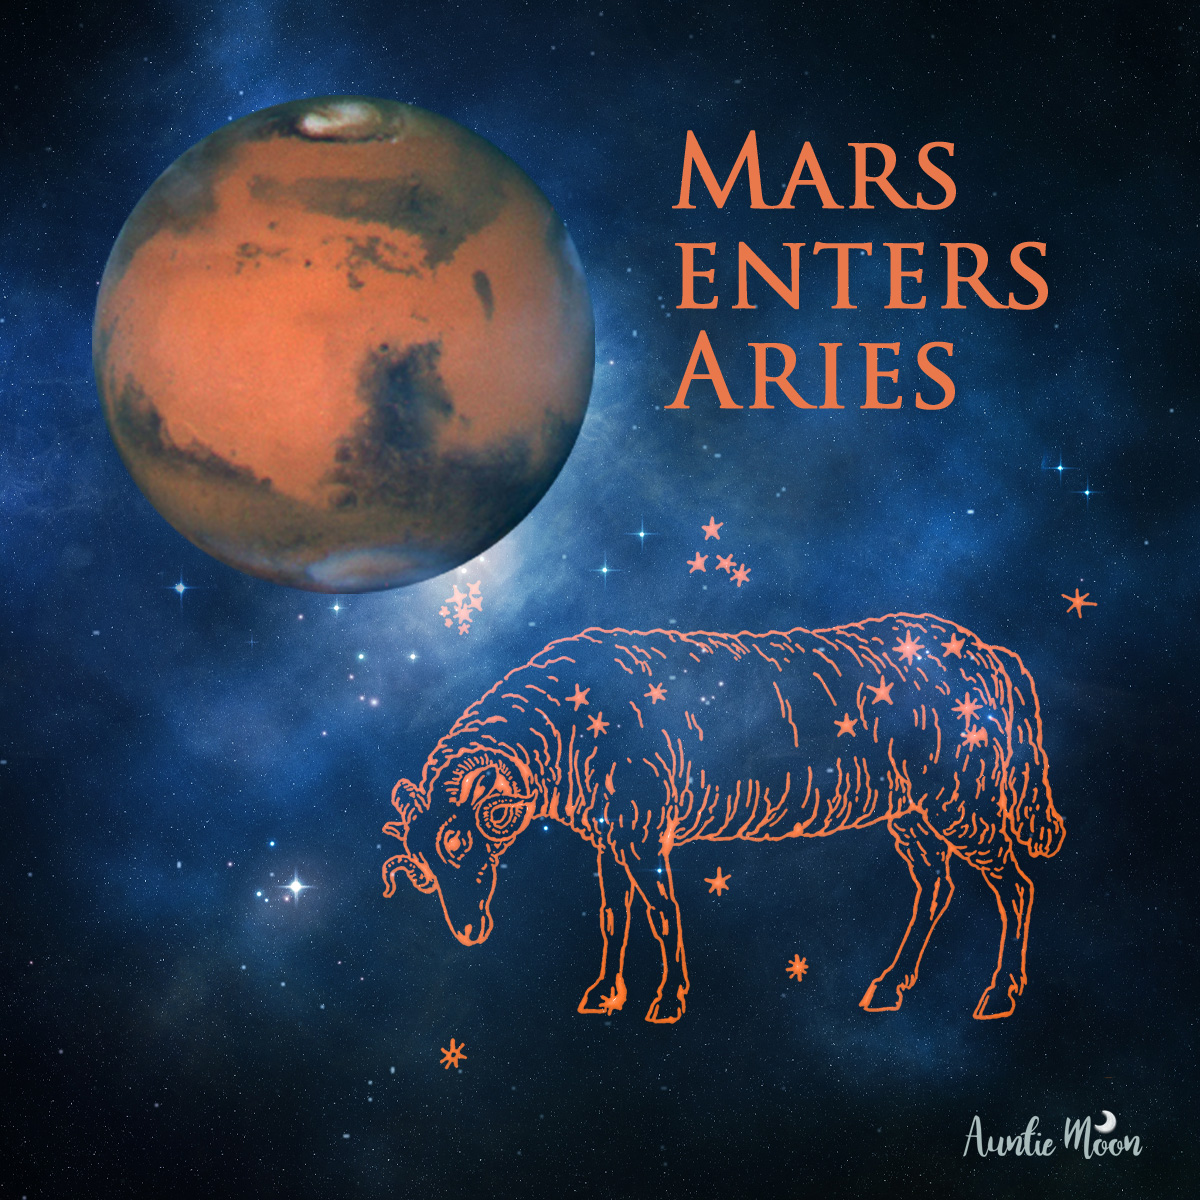 Mars enters Aries